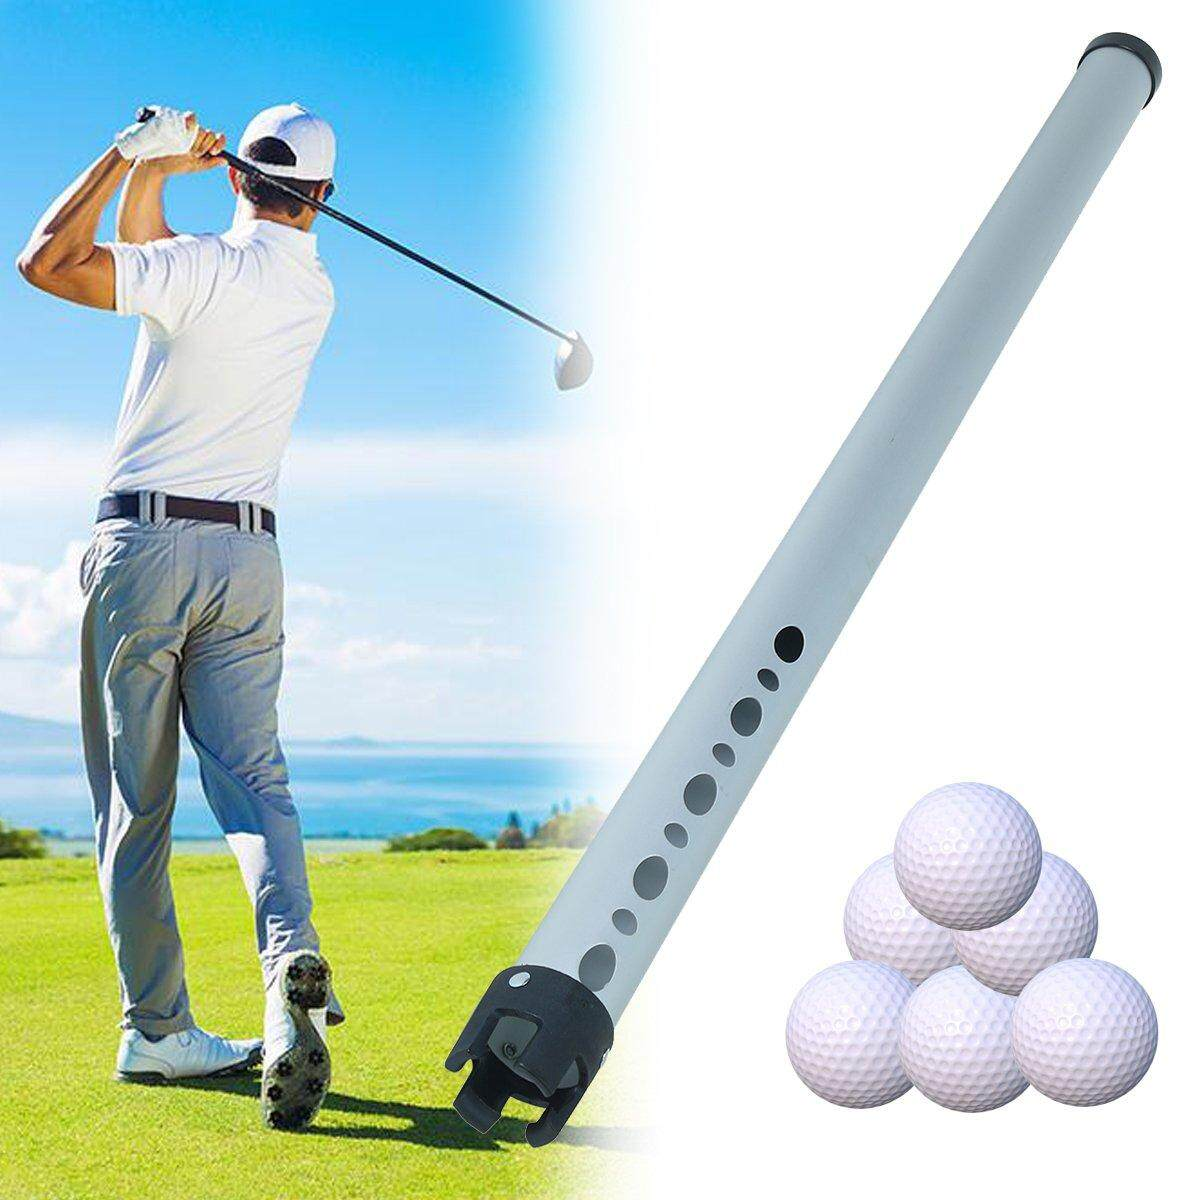 Portable Aluminum Shag Tube Practice Golf Ball Shagger Picker Hold Up 23 Balls By Audew.